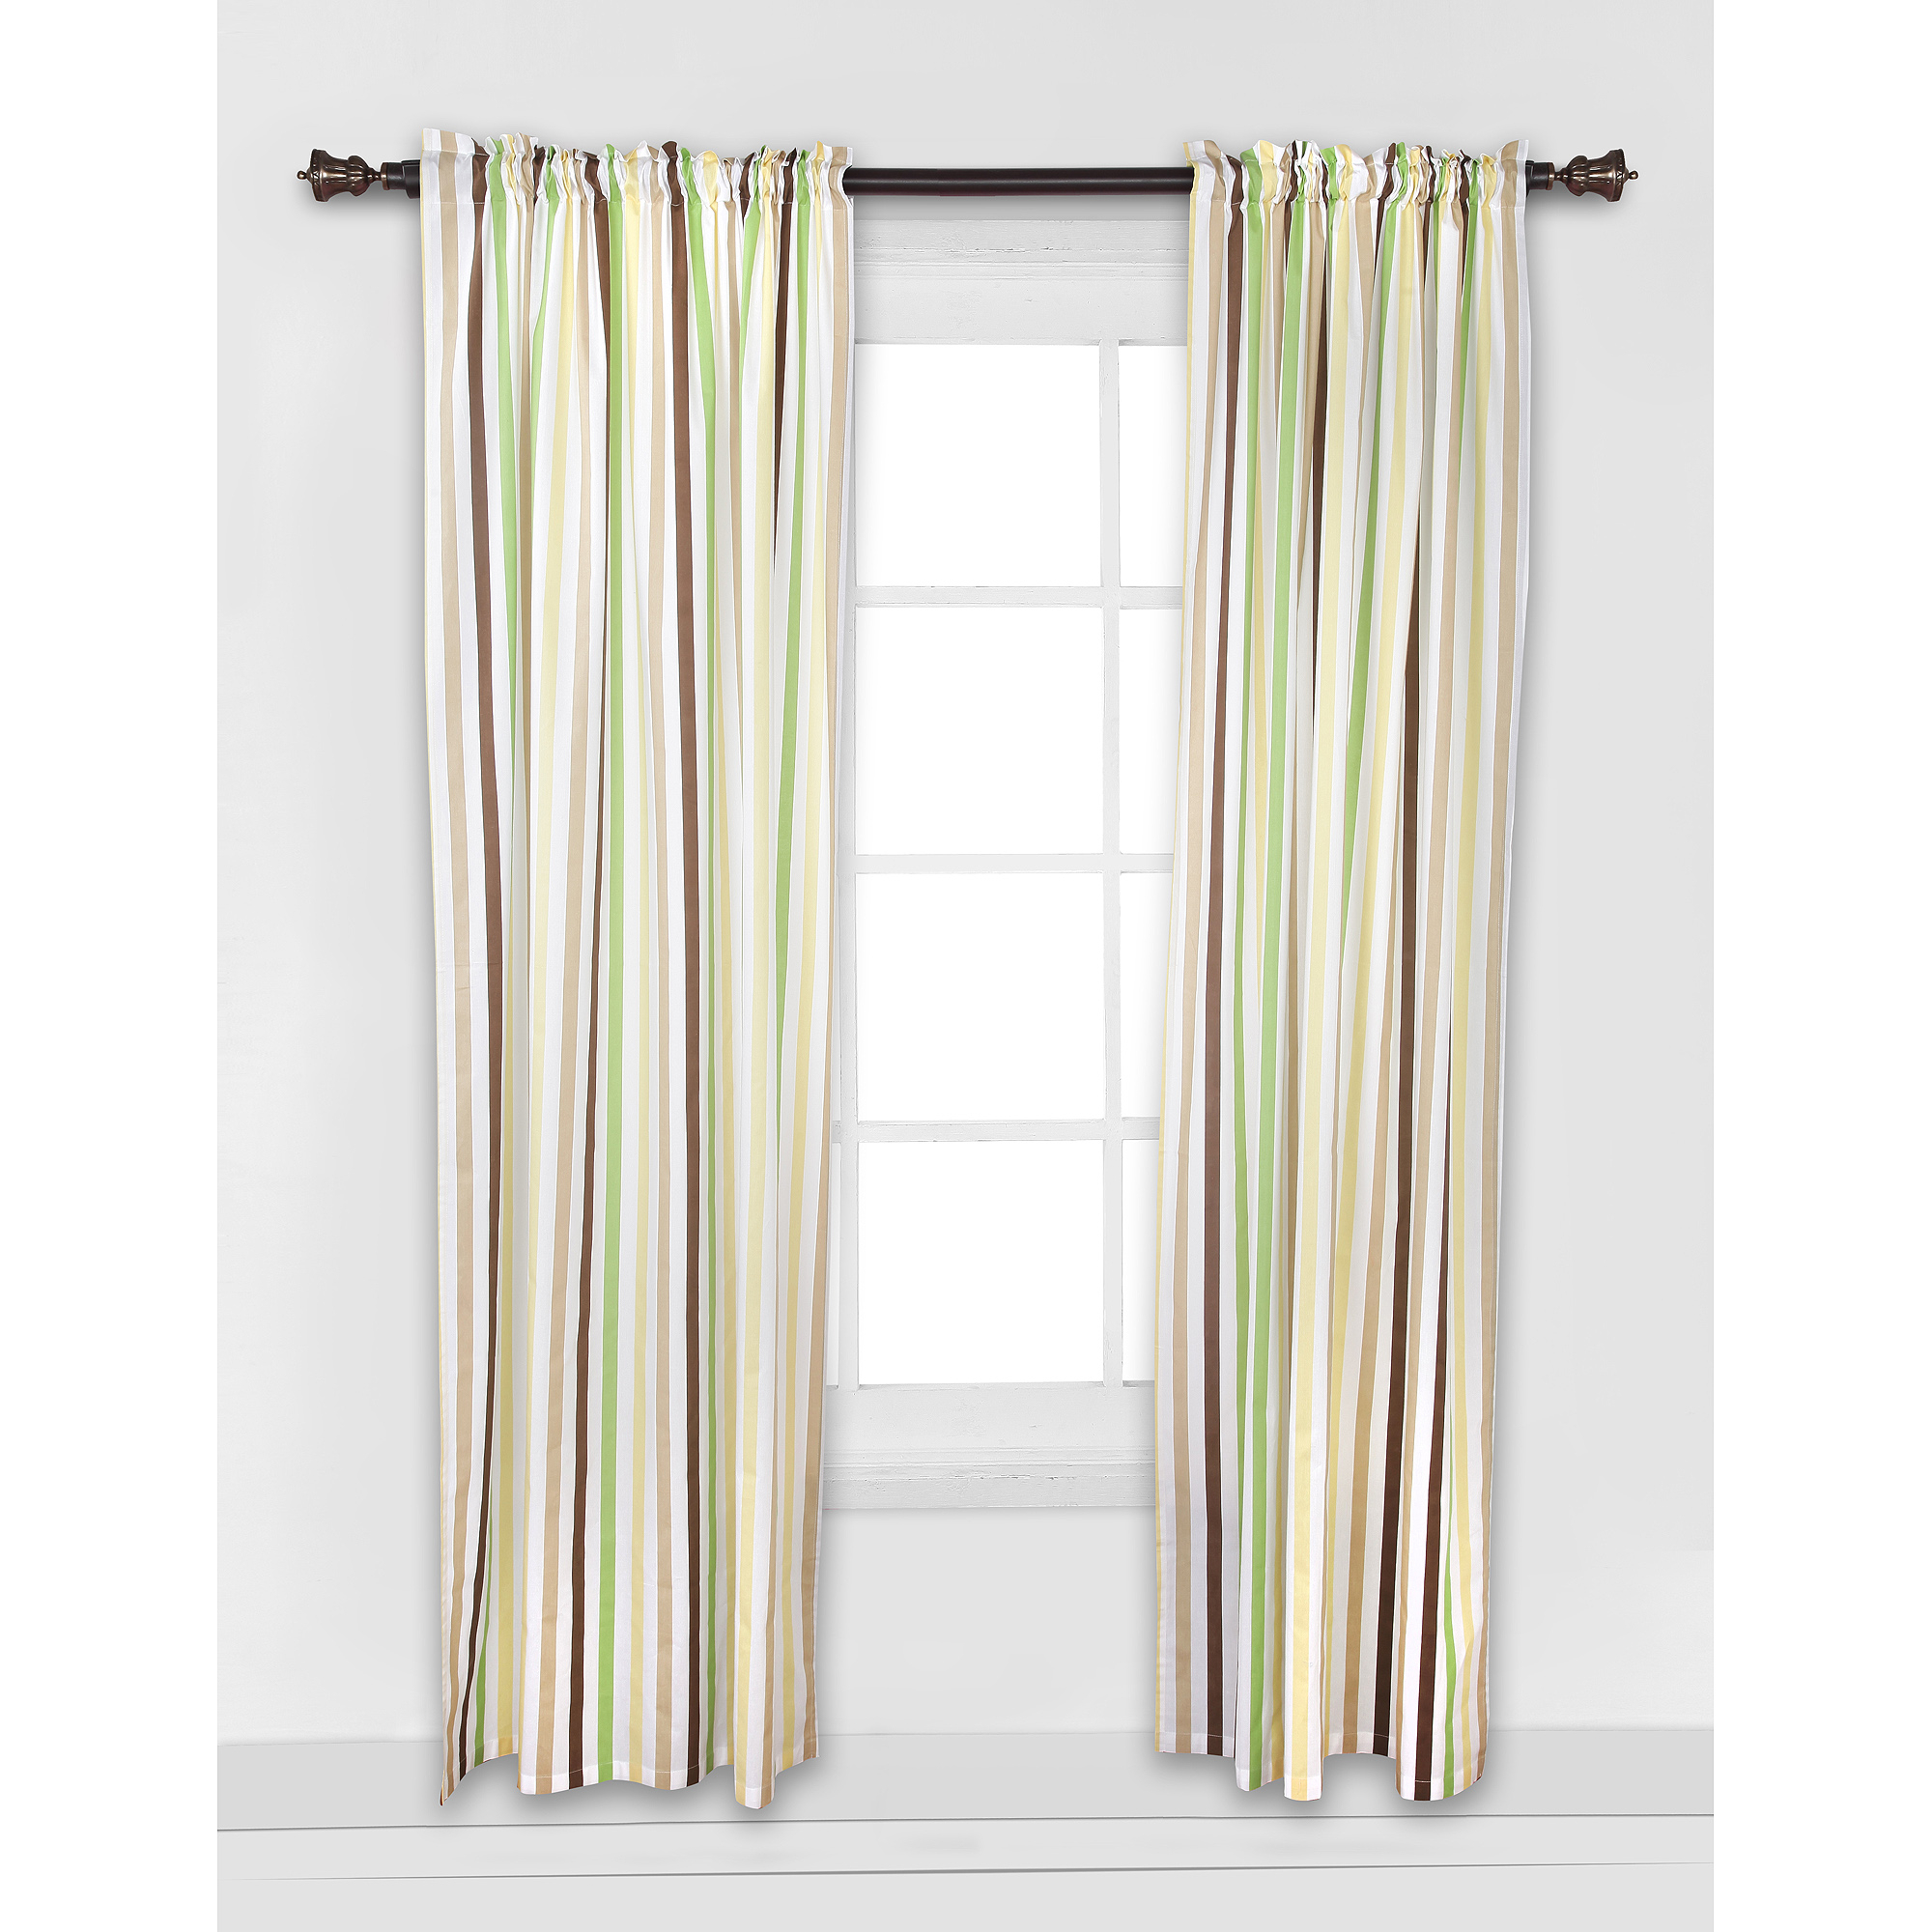 Bed Bath N More Ivory Micro Striped Semi Sheer Window Curtain Pieces – Tiers, Valance And Swag Options In Ivory Micro Striped Semi Sheer Window Curtain Pieces (View 5 of 20)